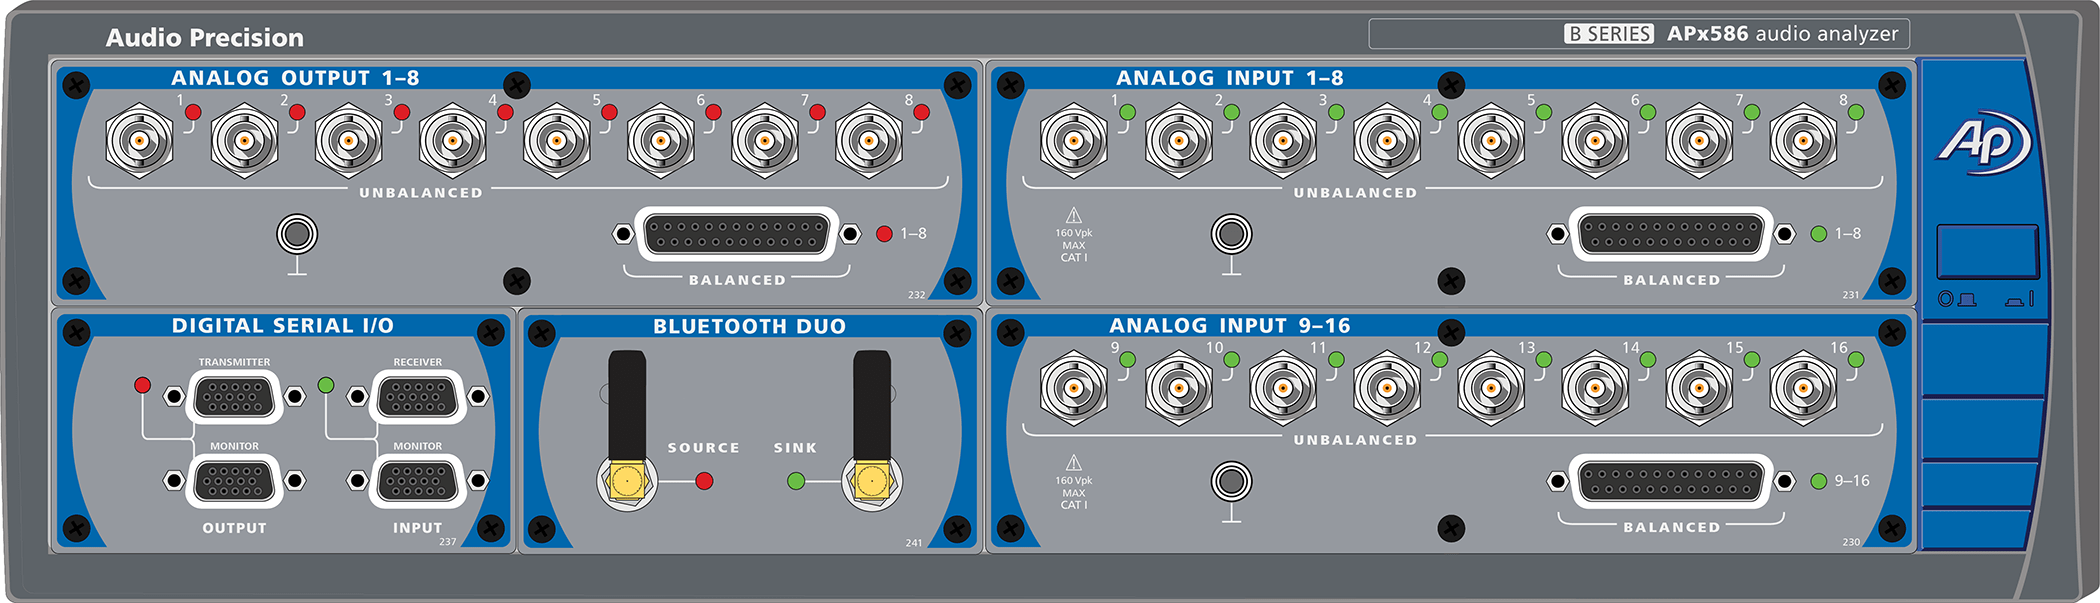 Apx58x Audio Analyzer Precision The Global Leader Circuit Design Suite Screenshot 14